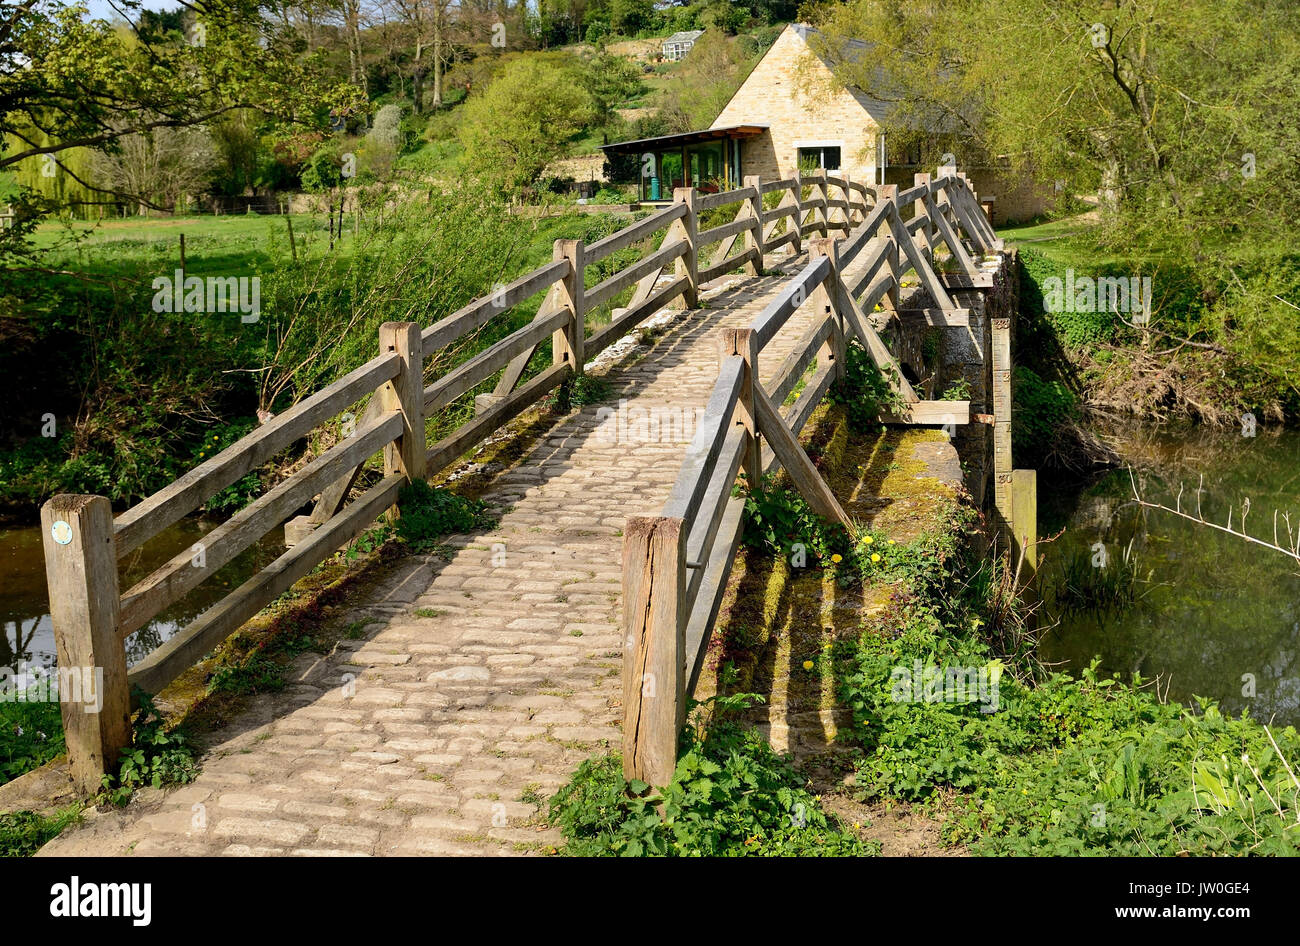 The packhorse bridge over the river Frome at Tellisford spans the county boundary between Wiltshire and Somerset. (Seen from the Wiltshire bank). - Stock Image